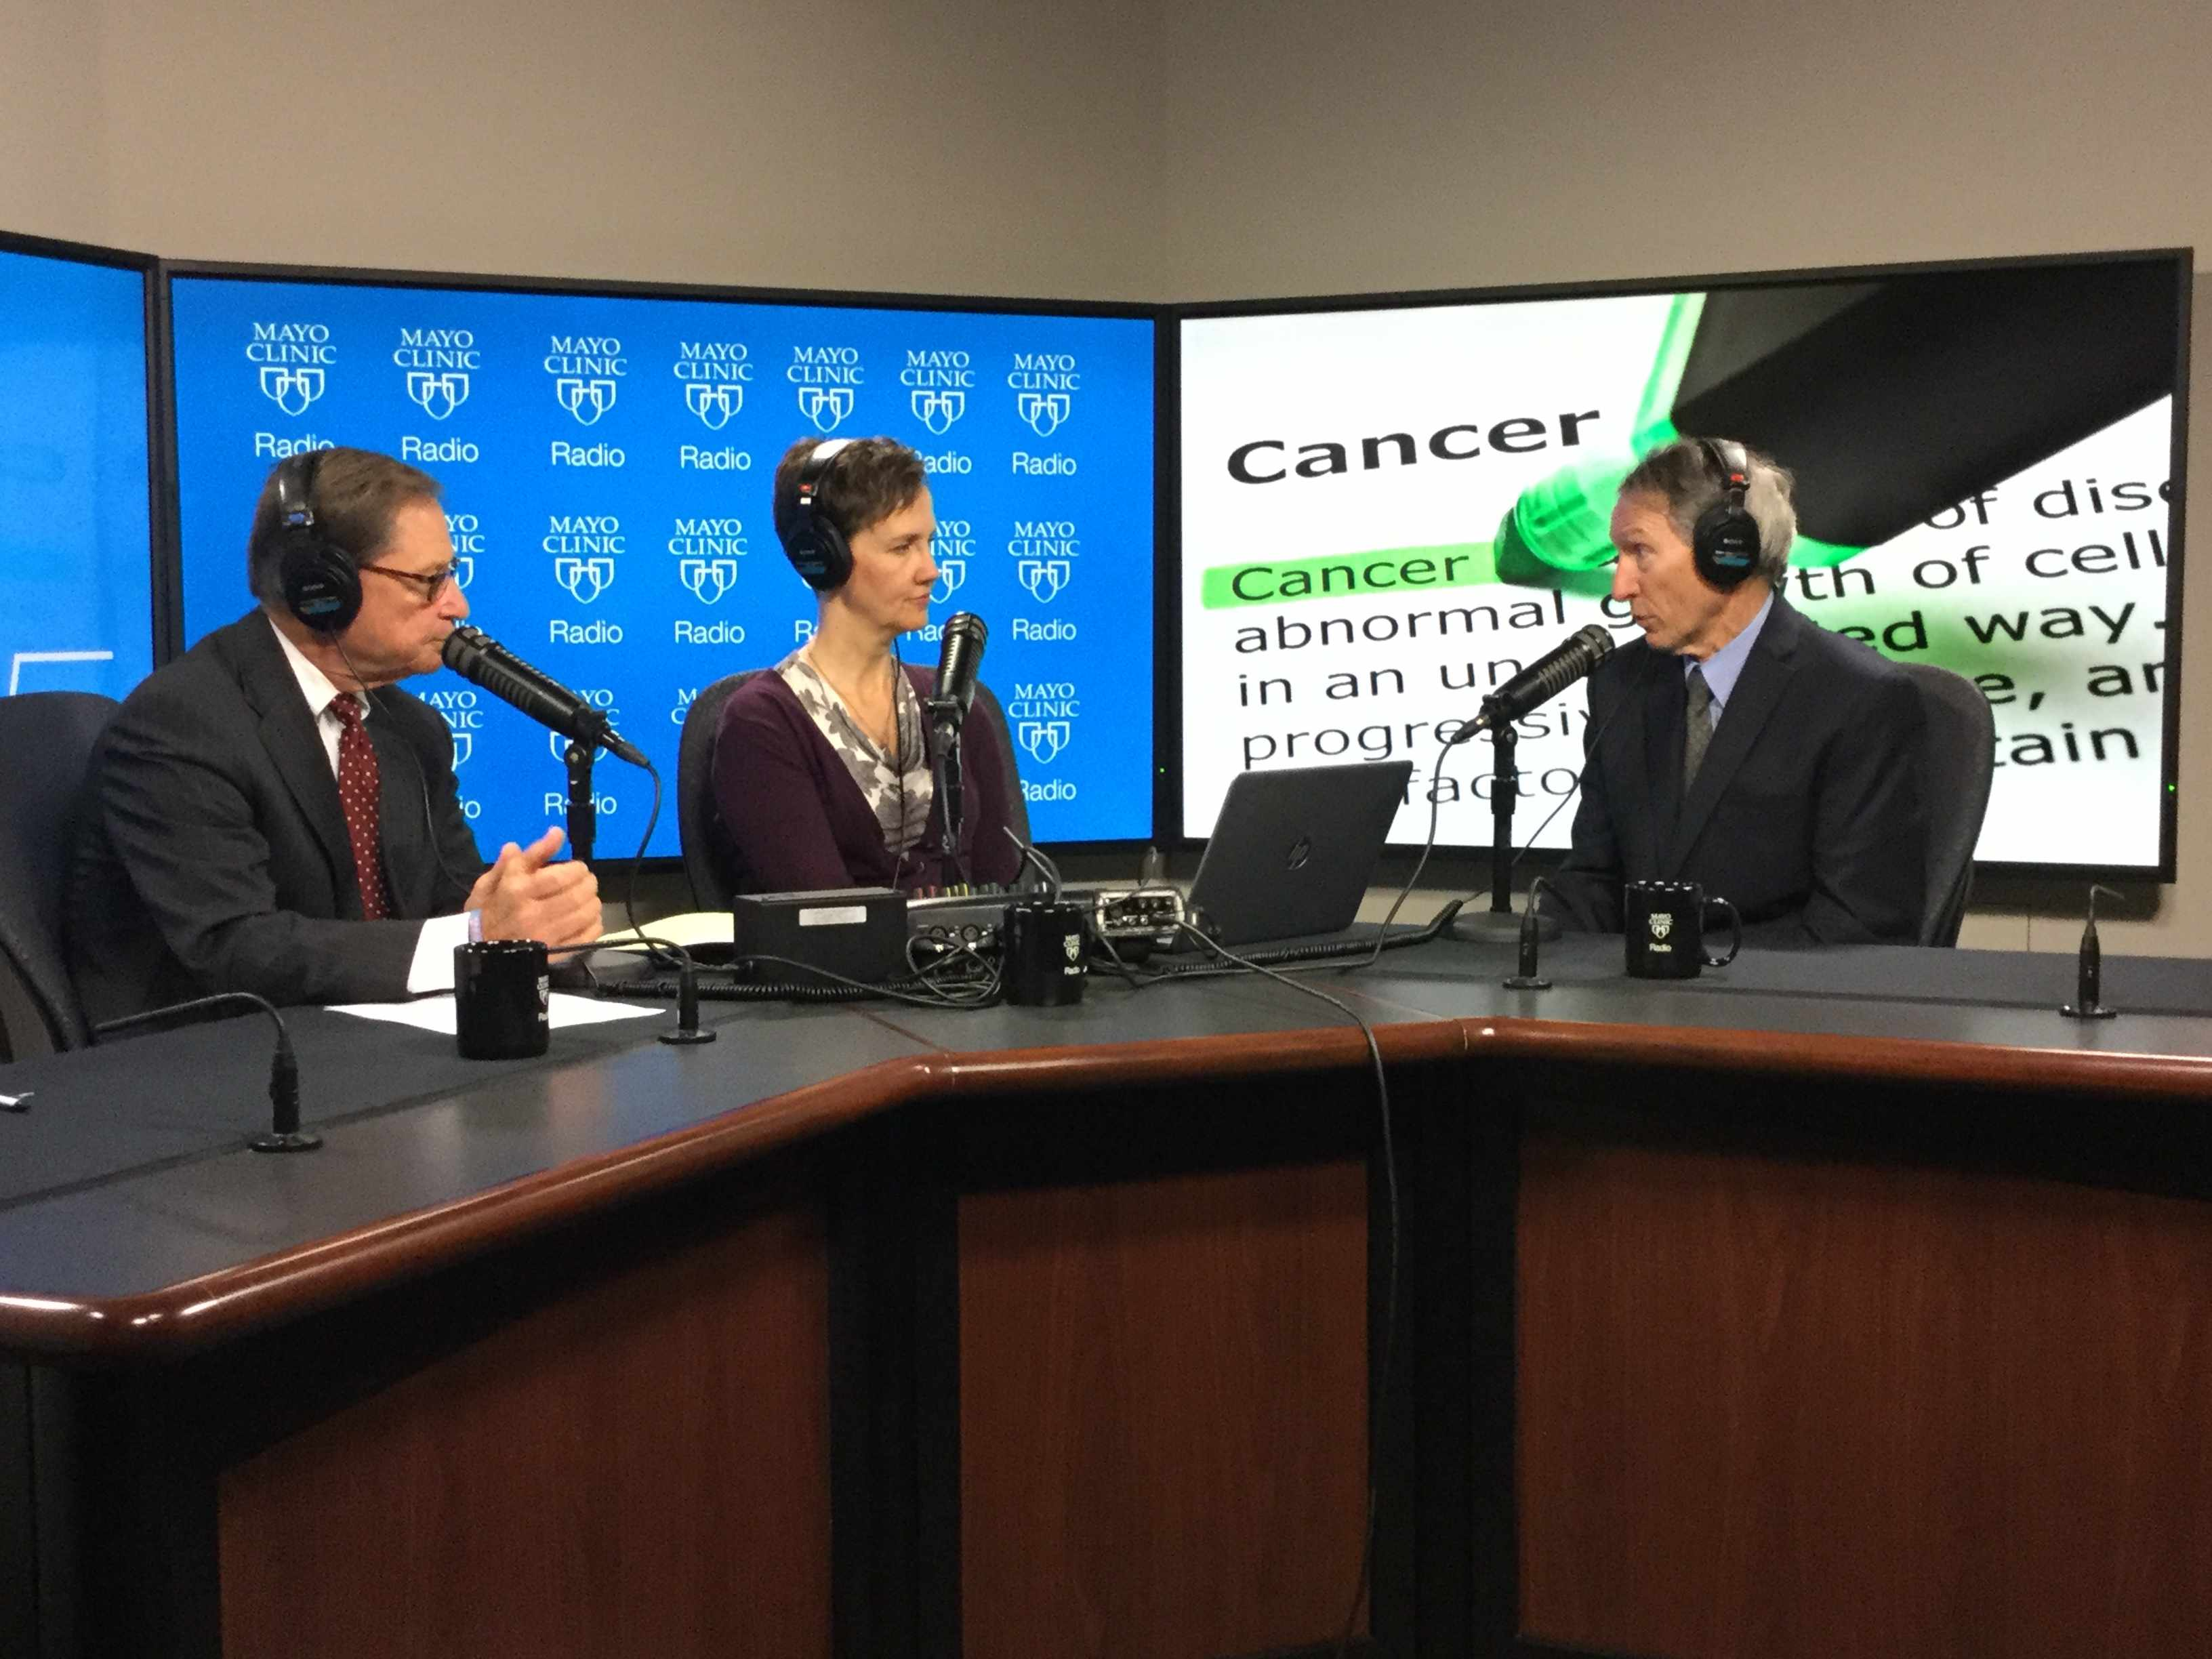 Dr. Timothy Moynihan being interviewed on Mayo Clinic Radio